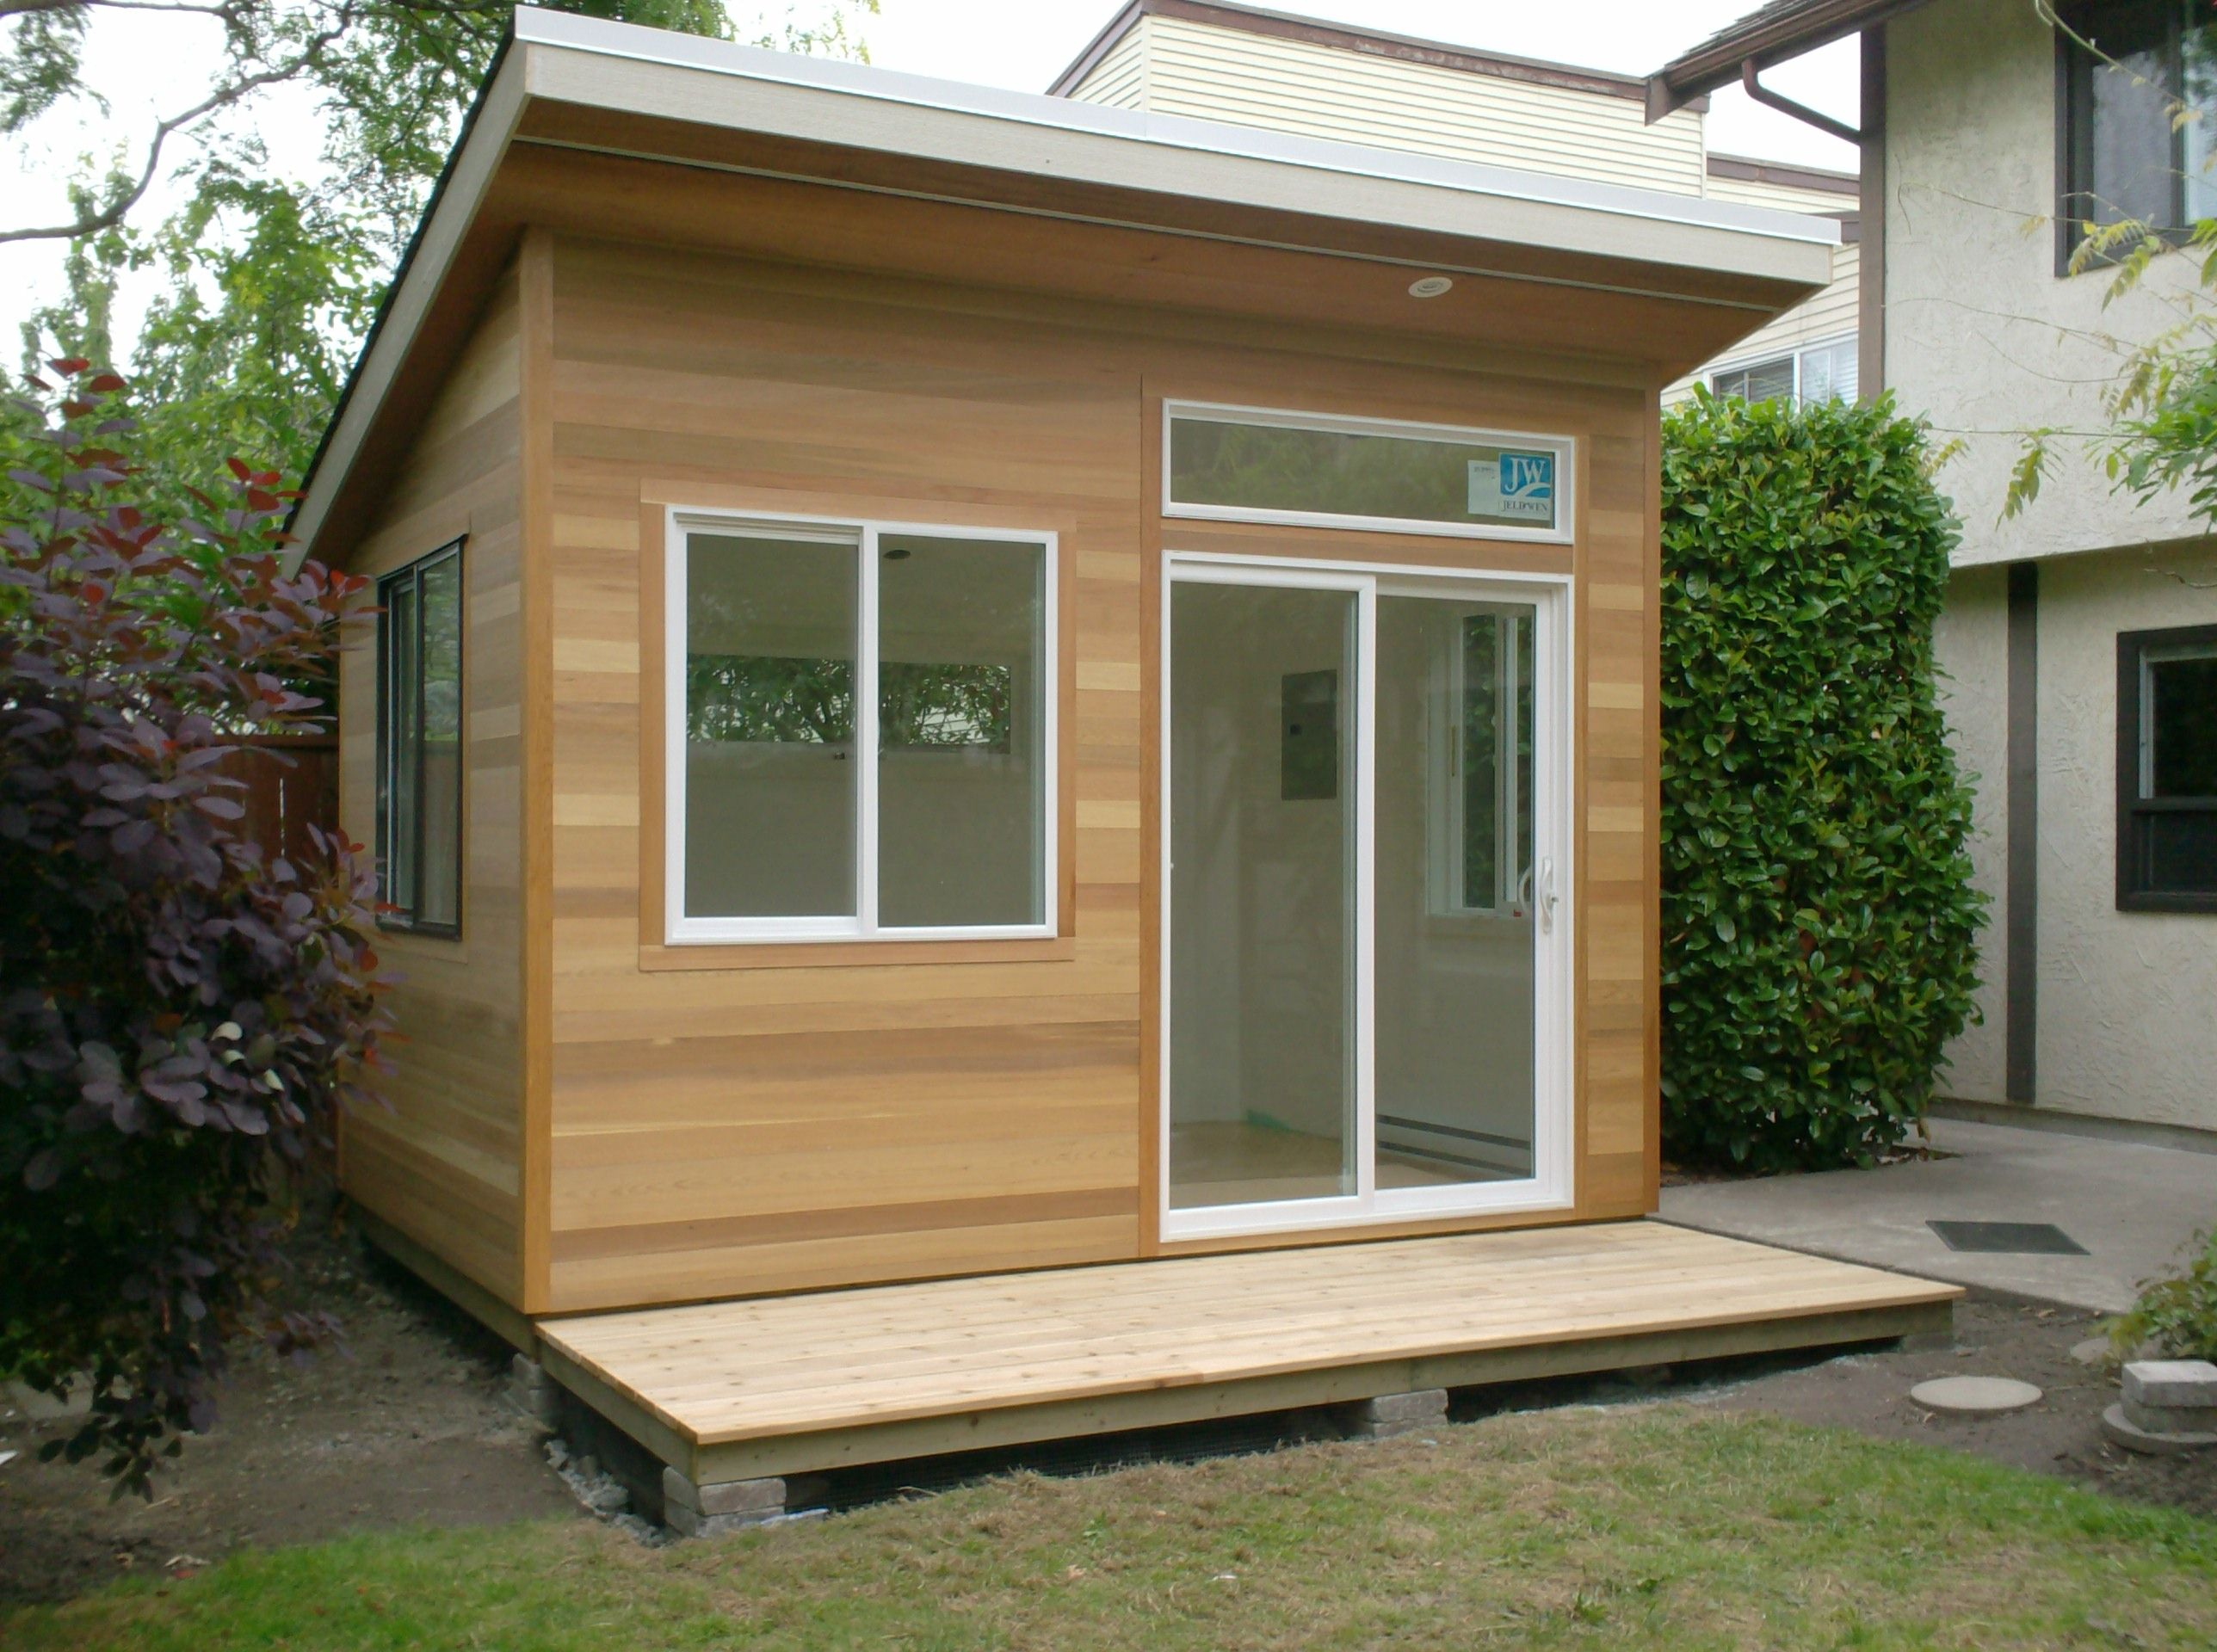 this 8x12 studio has a 9 u0027 front wall in order to accommodate the